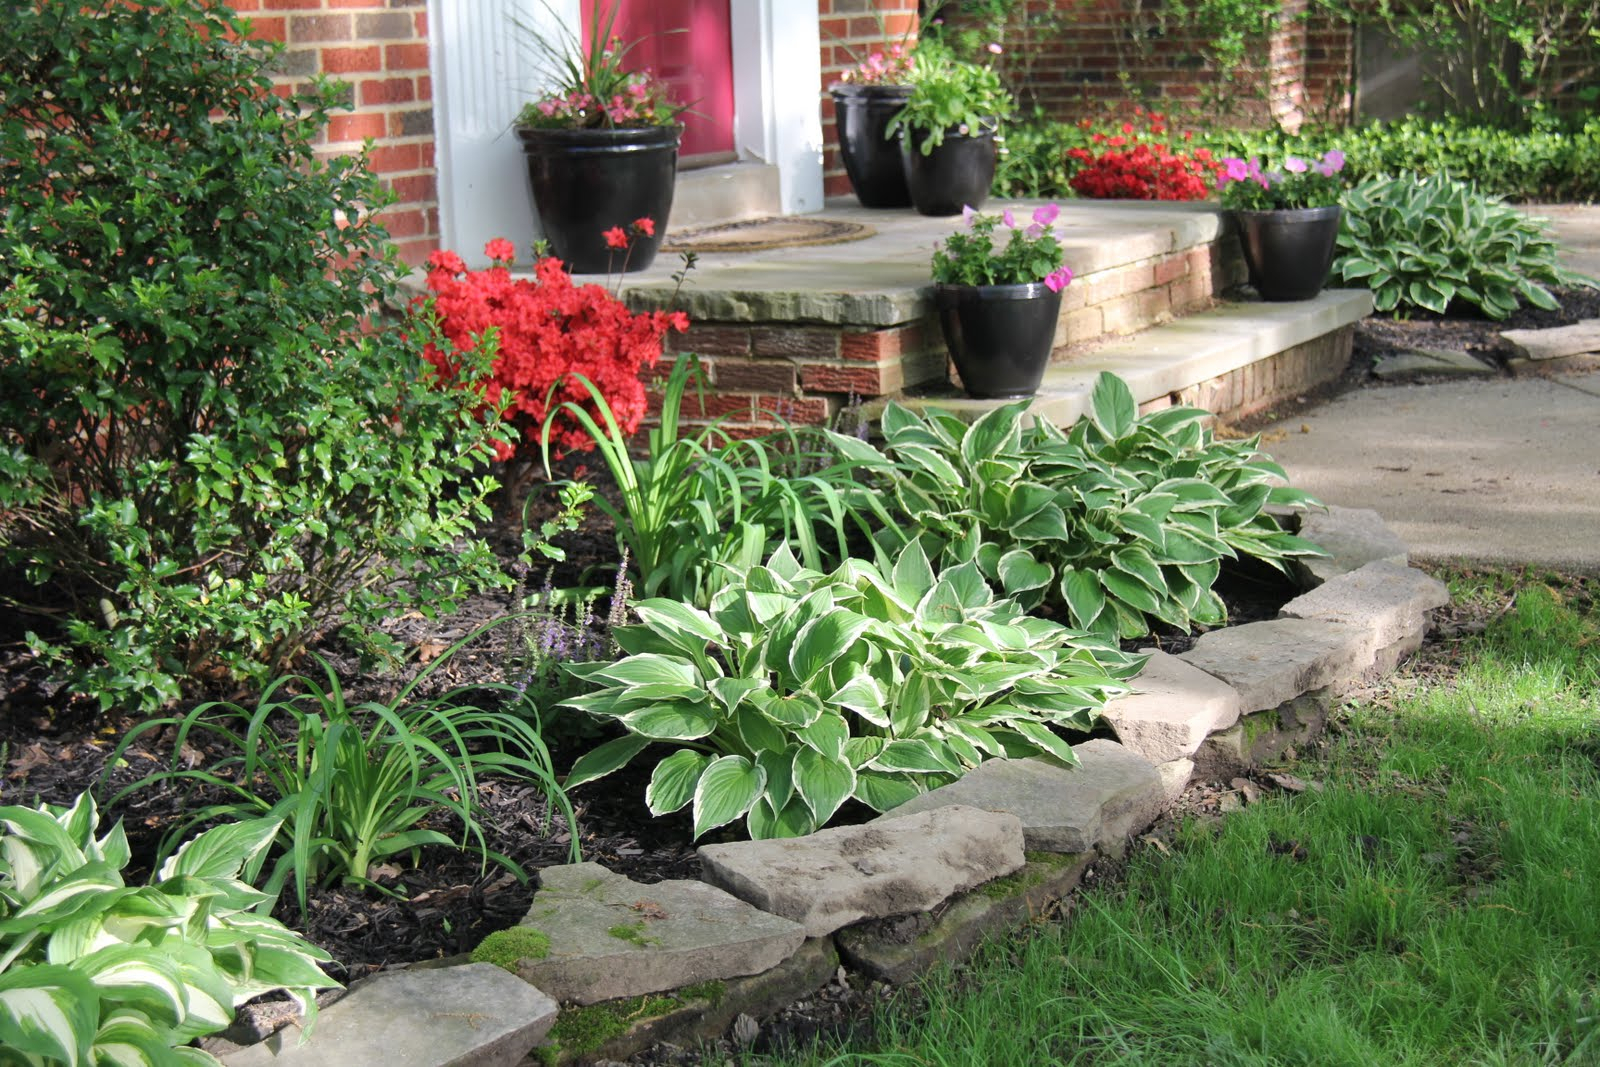 10 Lovely Flower Beds Ideas Front Yard garden bed ideas front yard outdoor ideas garden bed ideas